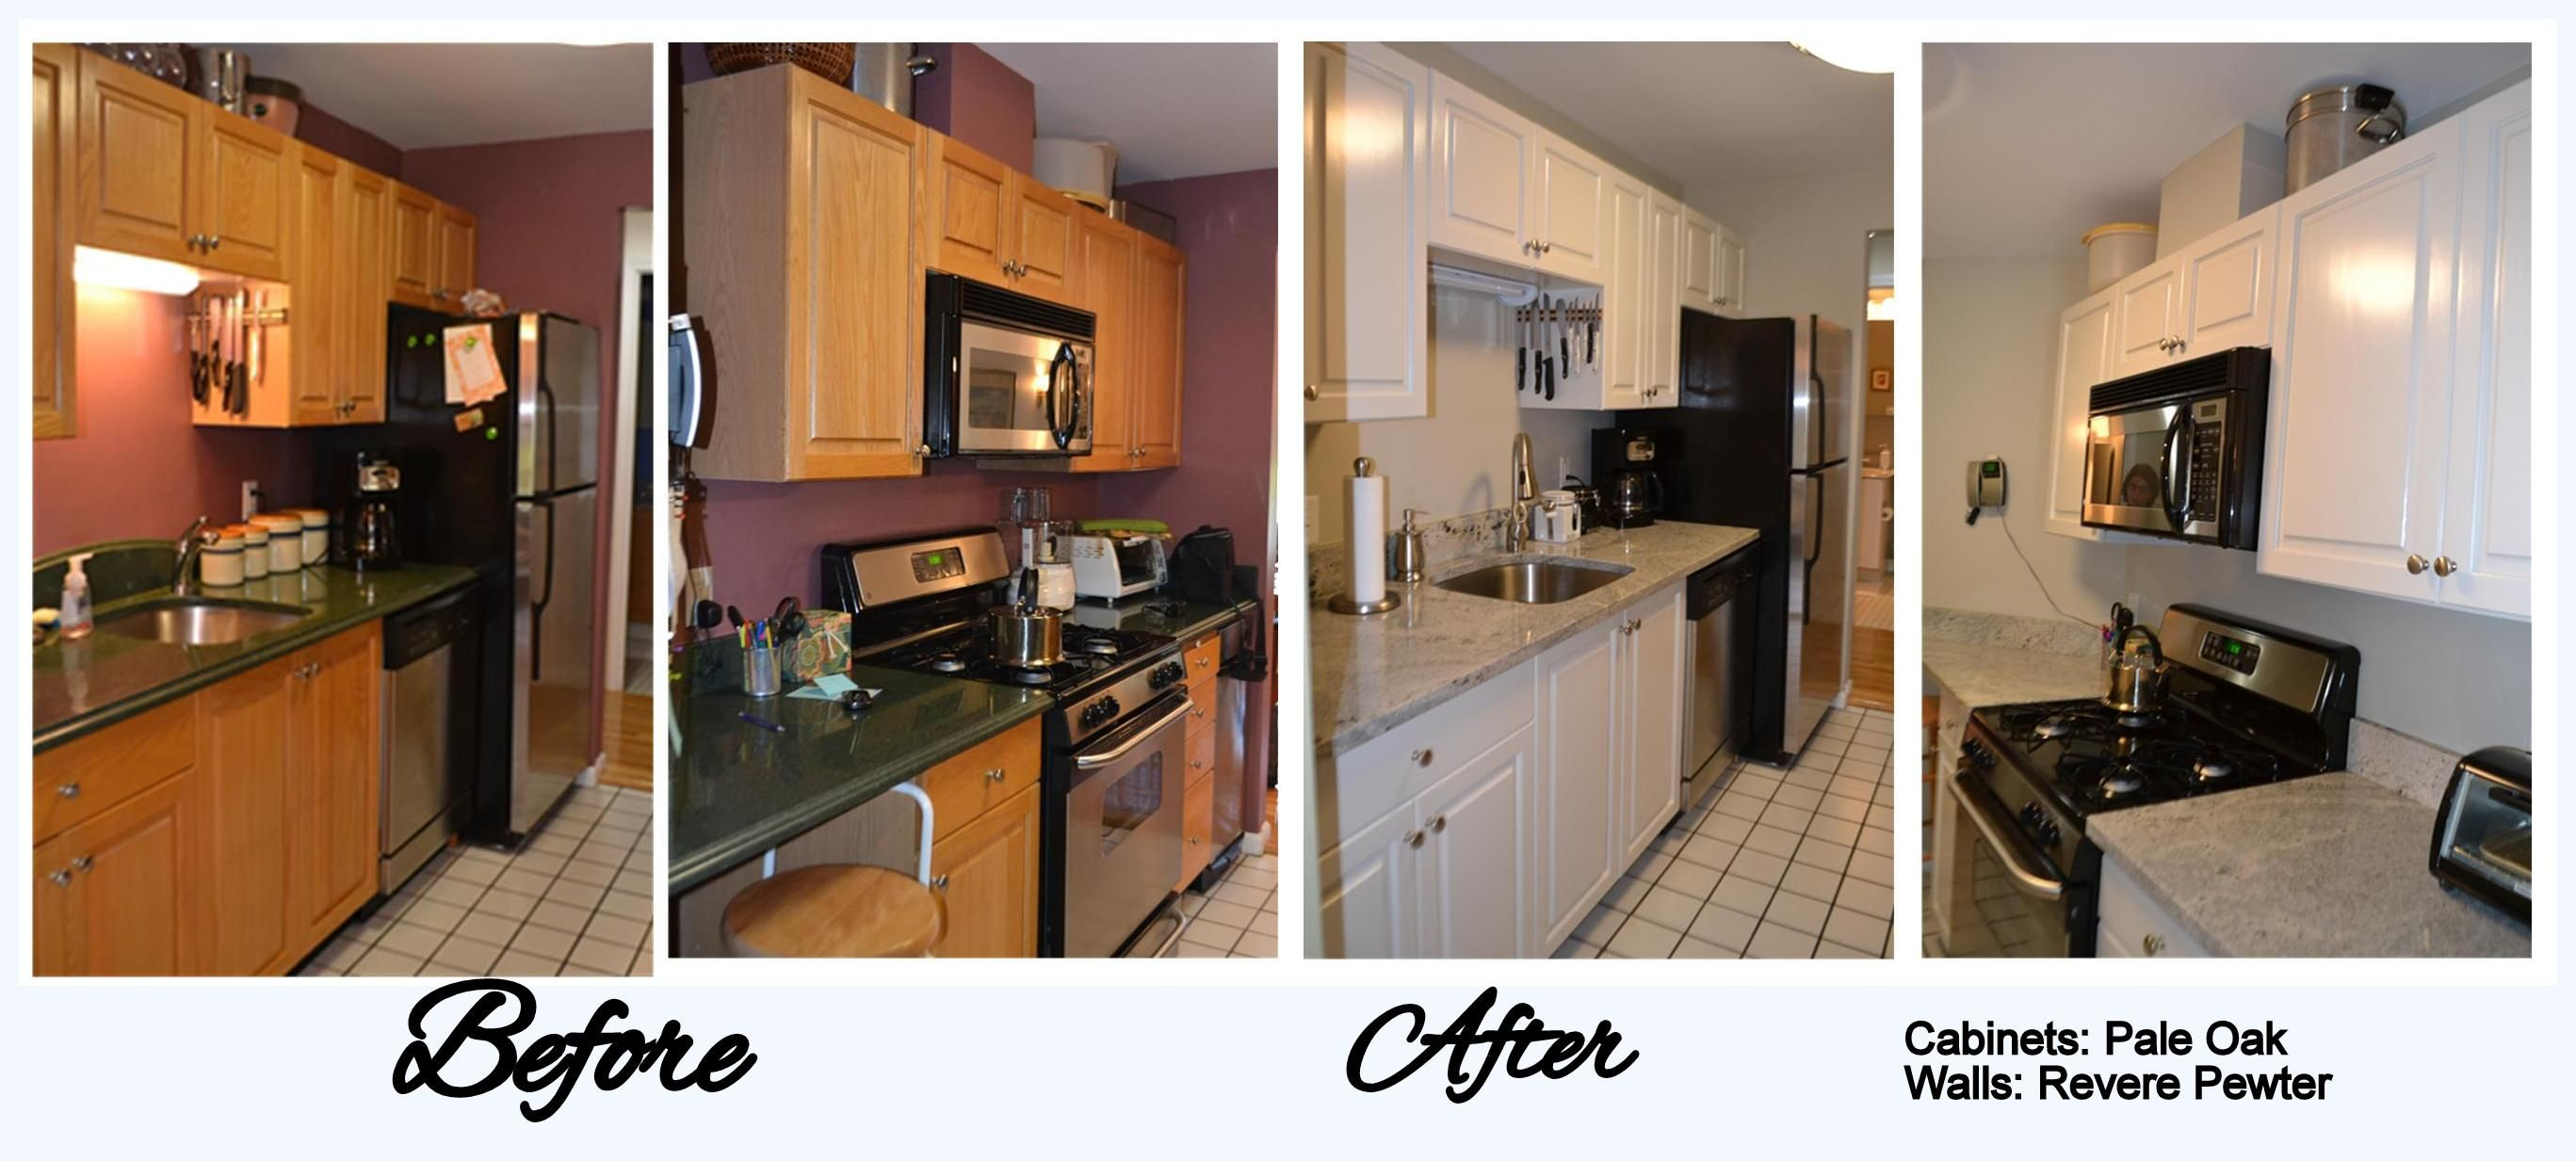 Kitchen Cabinet Laminate Refacing Kitchen Cabinet Refacing Before And After Photos  Google Search .